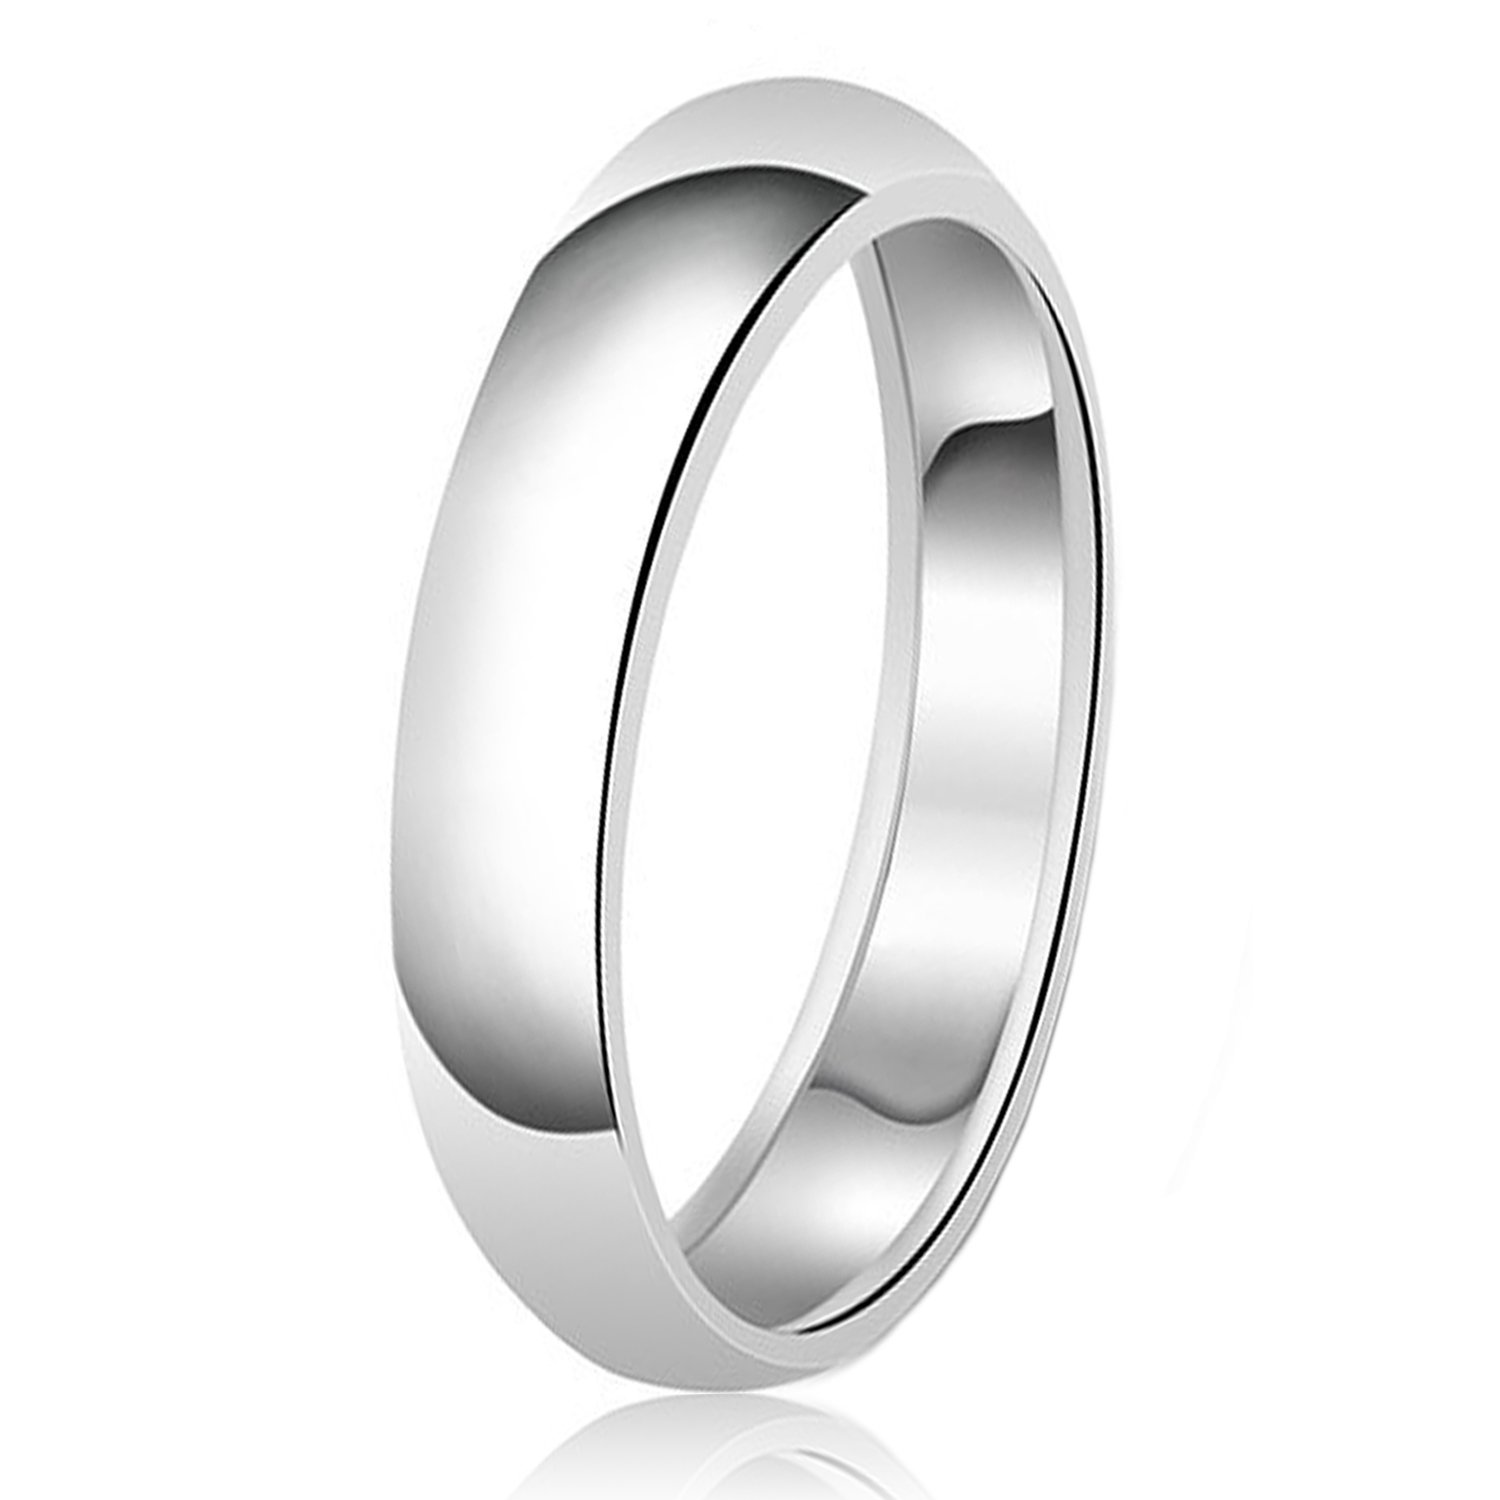 5mm Classic Sterling Silver Plain Wedding Band Ring, Size 7